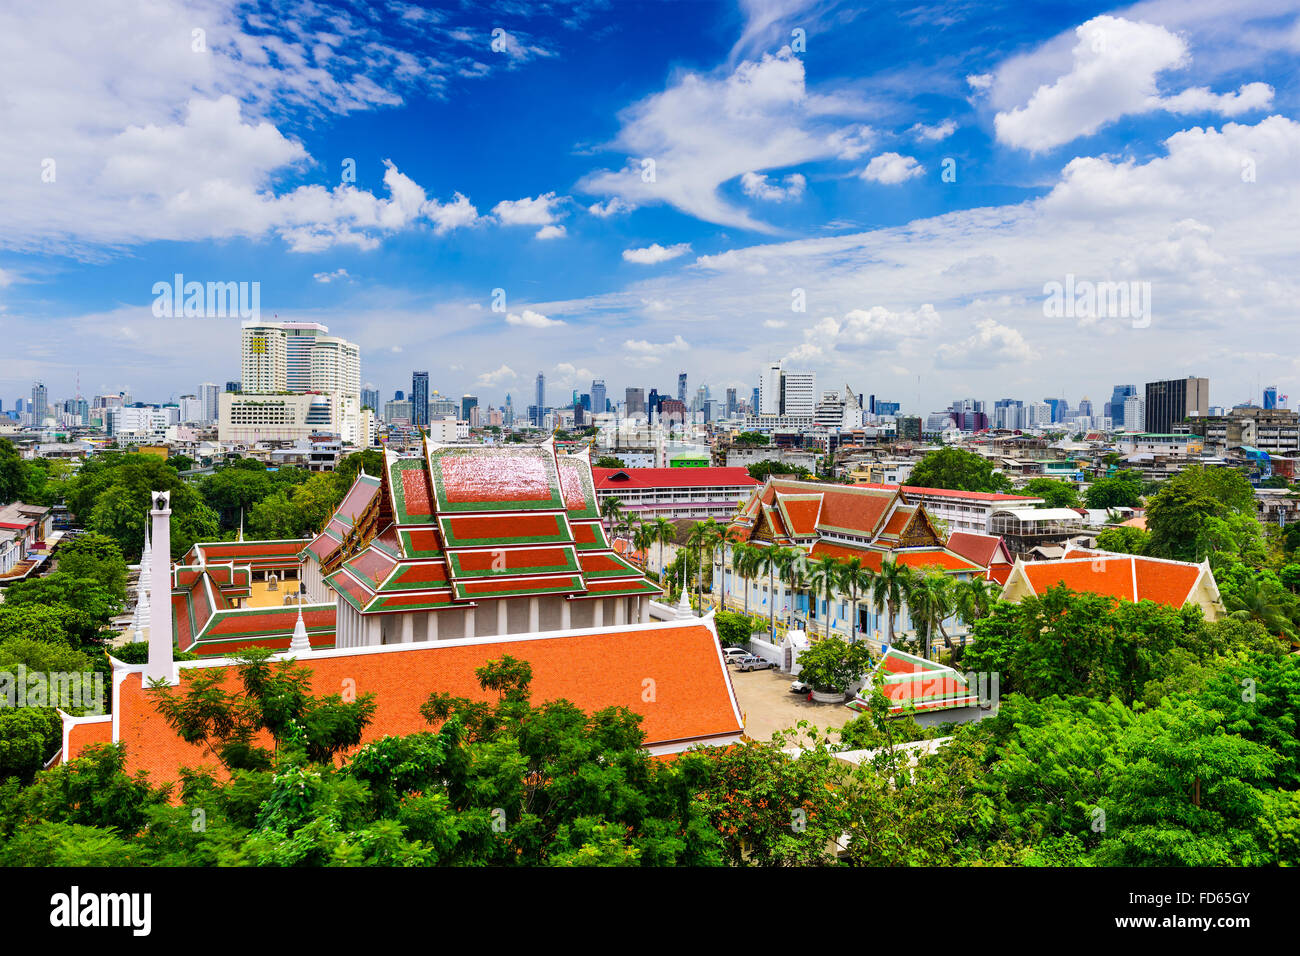 Bangkok, Thailand skyline over Wat Saket Temple buildings. - Stock Image